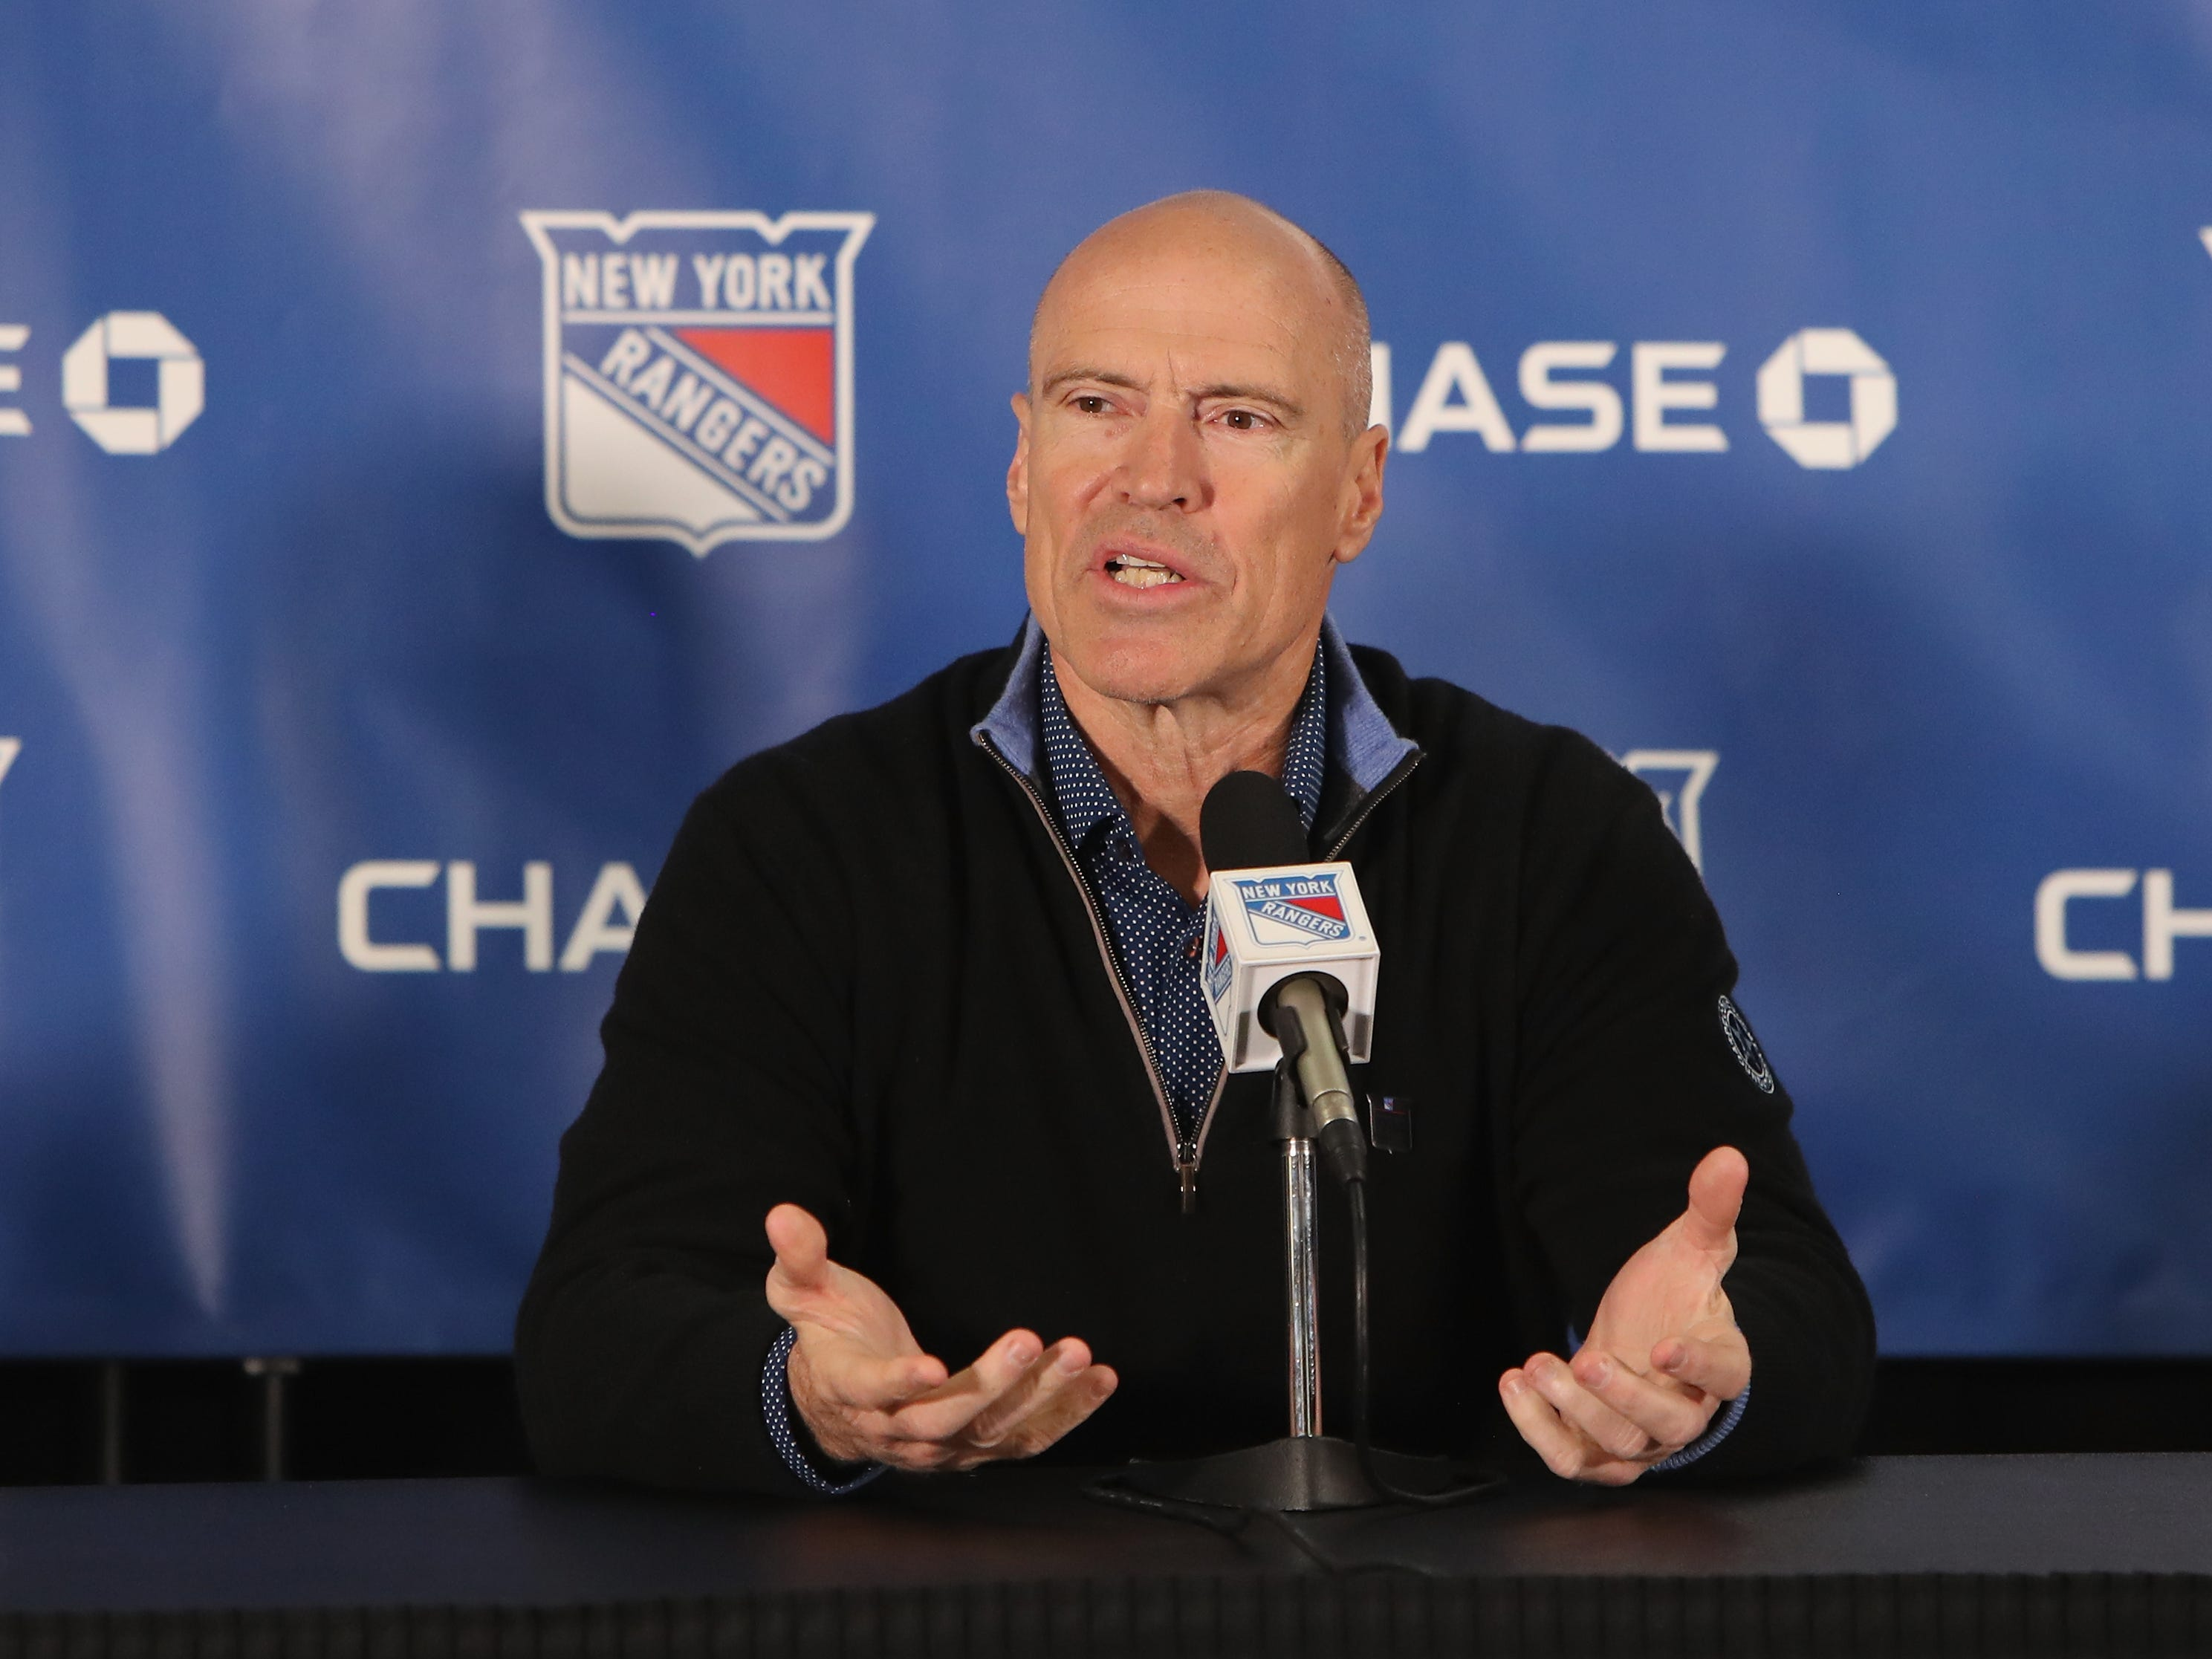 NEW YORK, NEW YORK - FEBRUARY 08: Former New York Ranger  Mark Messier meets with the media prior to the Rangers game against the Carolina Hurricanes at Madison Square Garden on February 08, 2019 in New York City. The Rangers were celebrating the 25th anniversary of their Stanley Cup win in 1994.